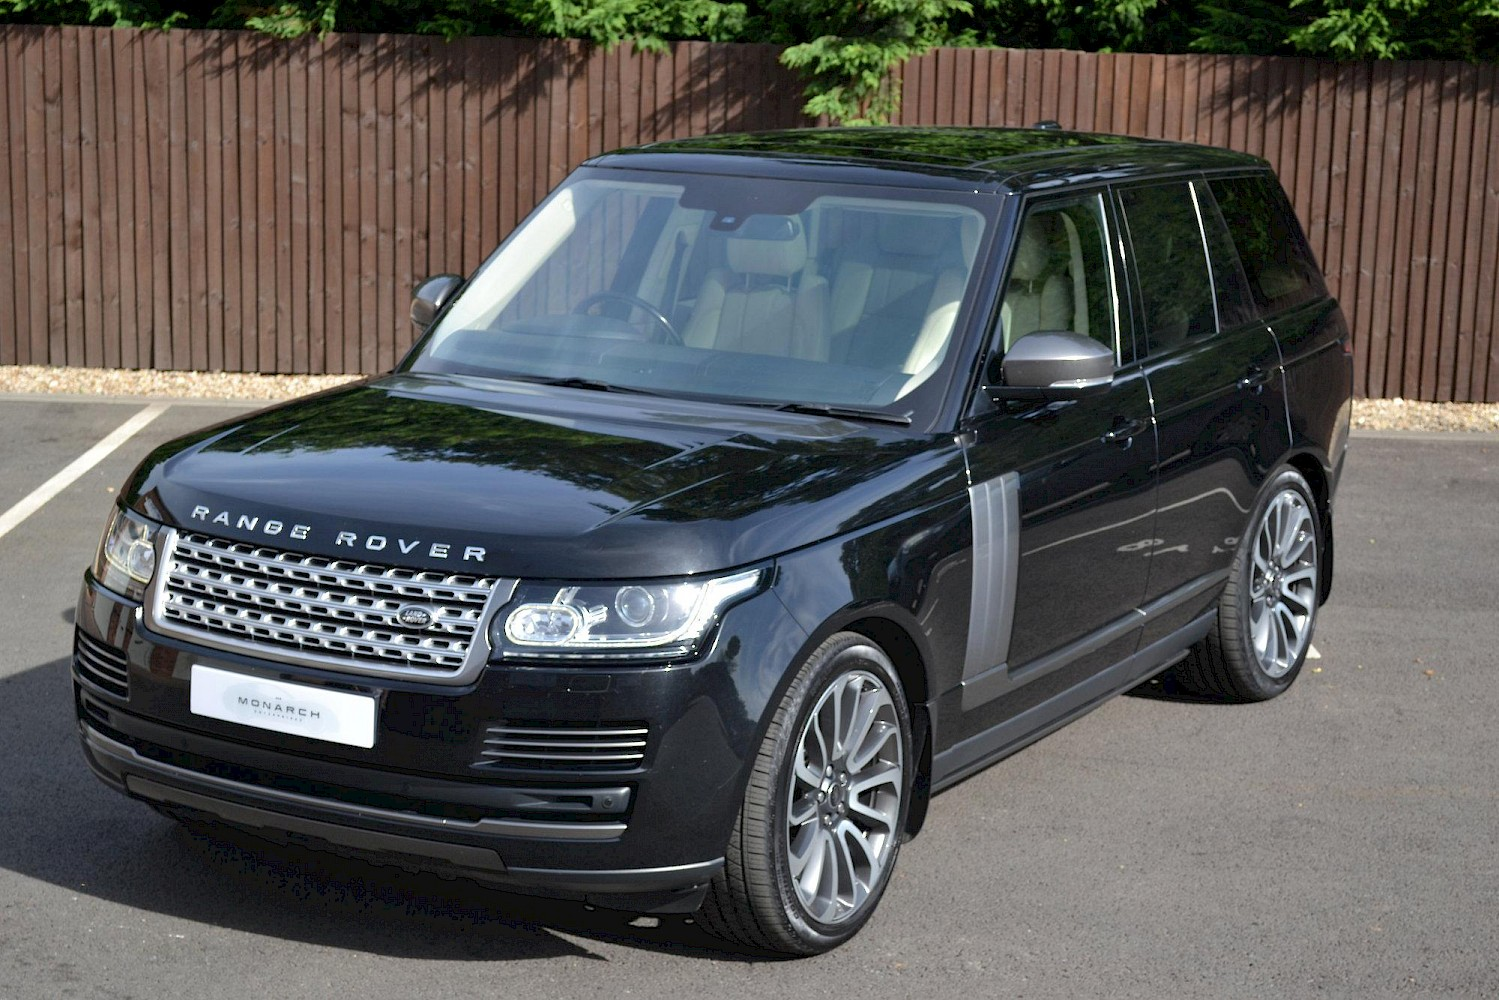 2013 13 land rover range rover vogue 4 4 cars monarch enterprises. Black Bedroom Furniture Sets. Home Design Ideas